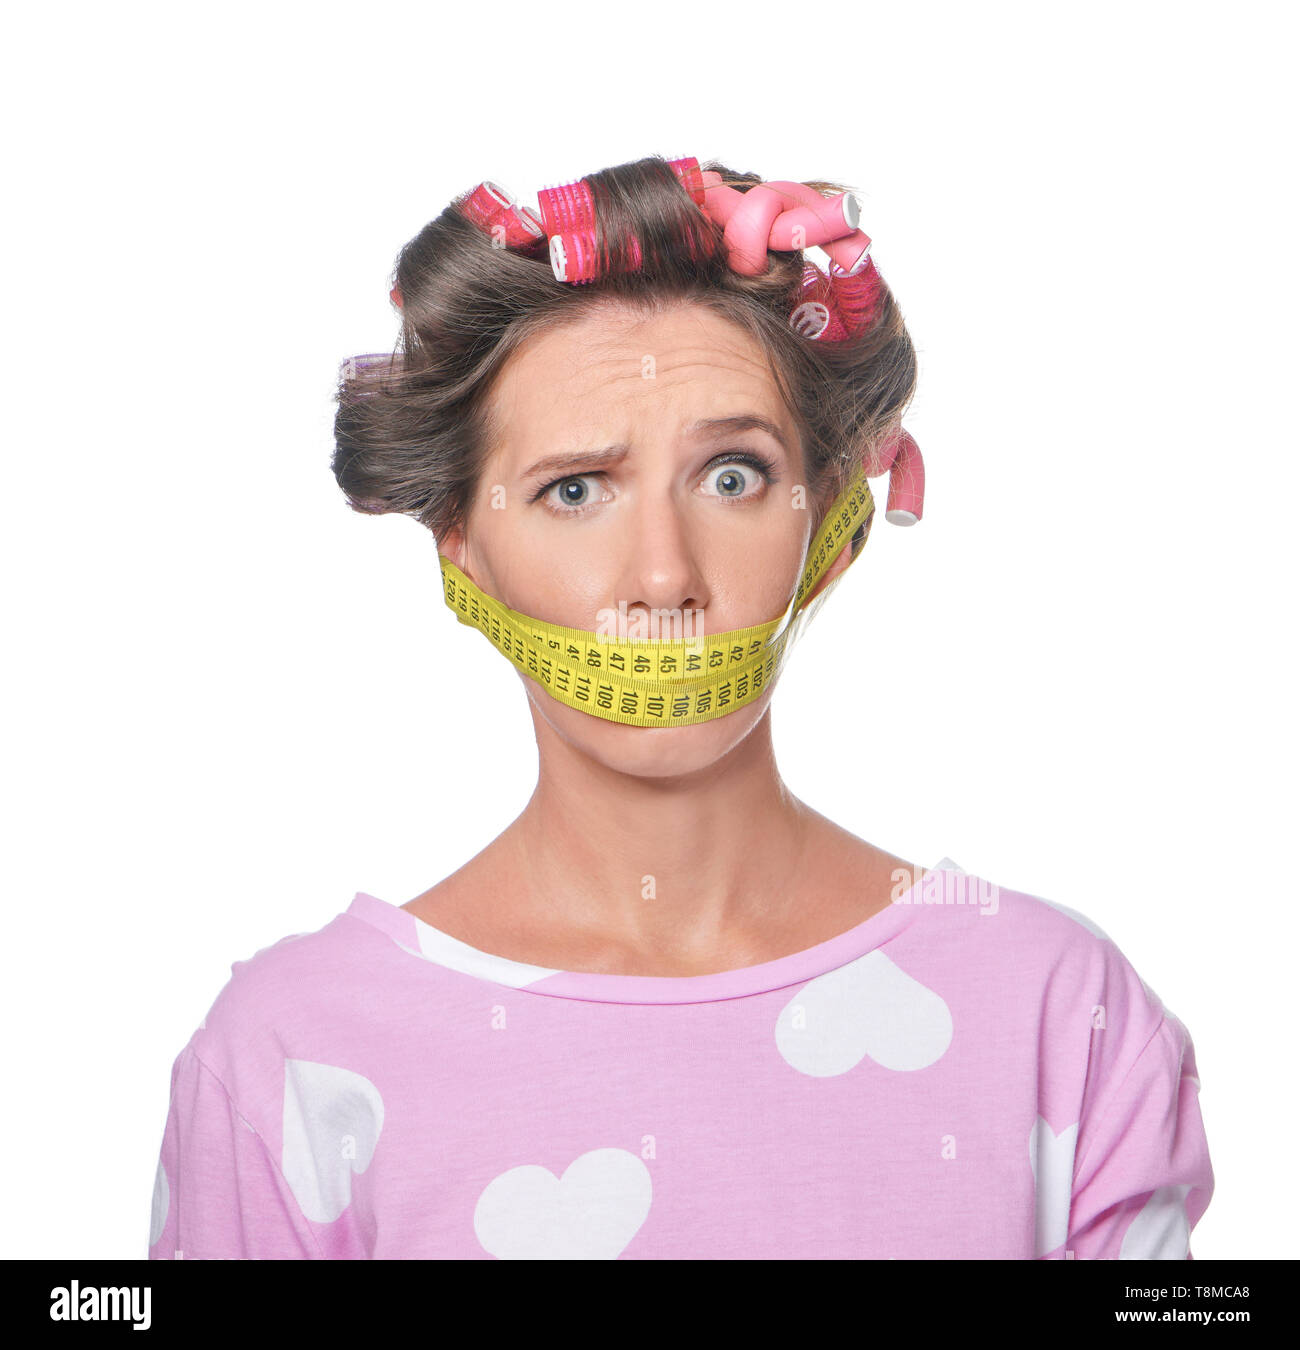 Stressful woman with measuring tape around her mouth on white background. Diet concept - Stock Image